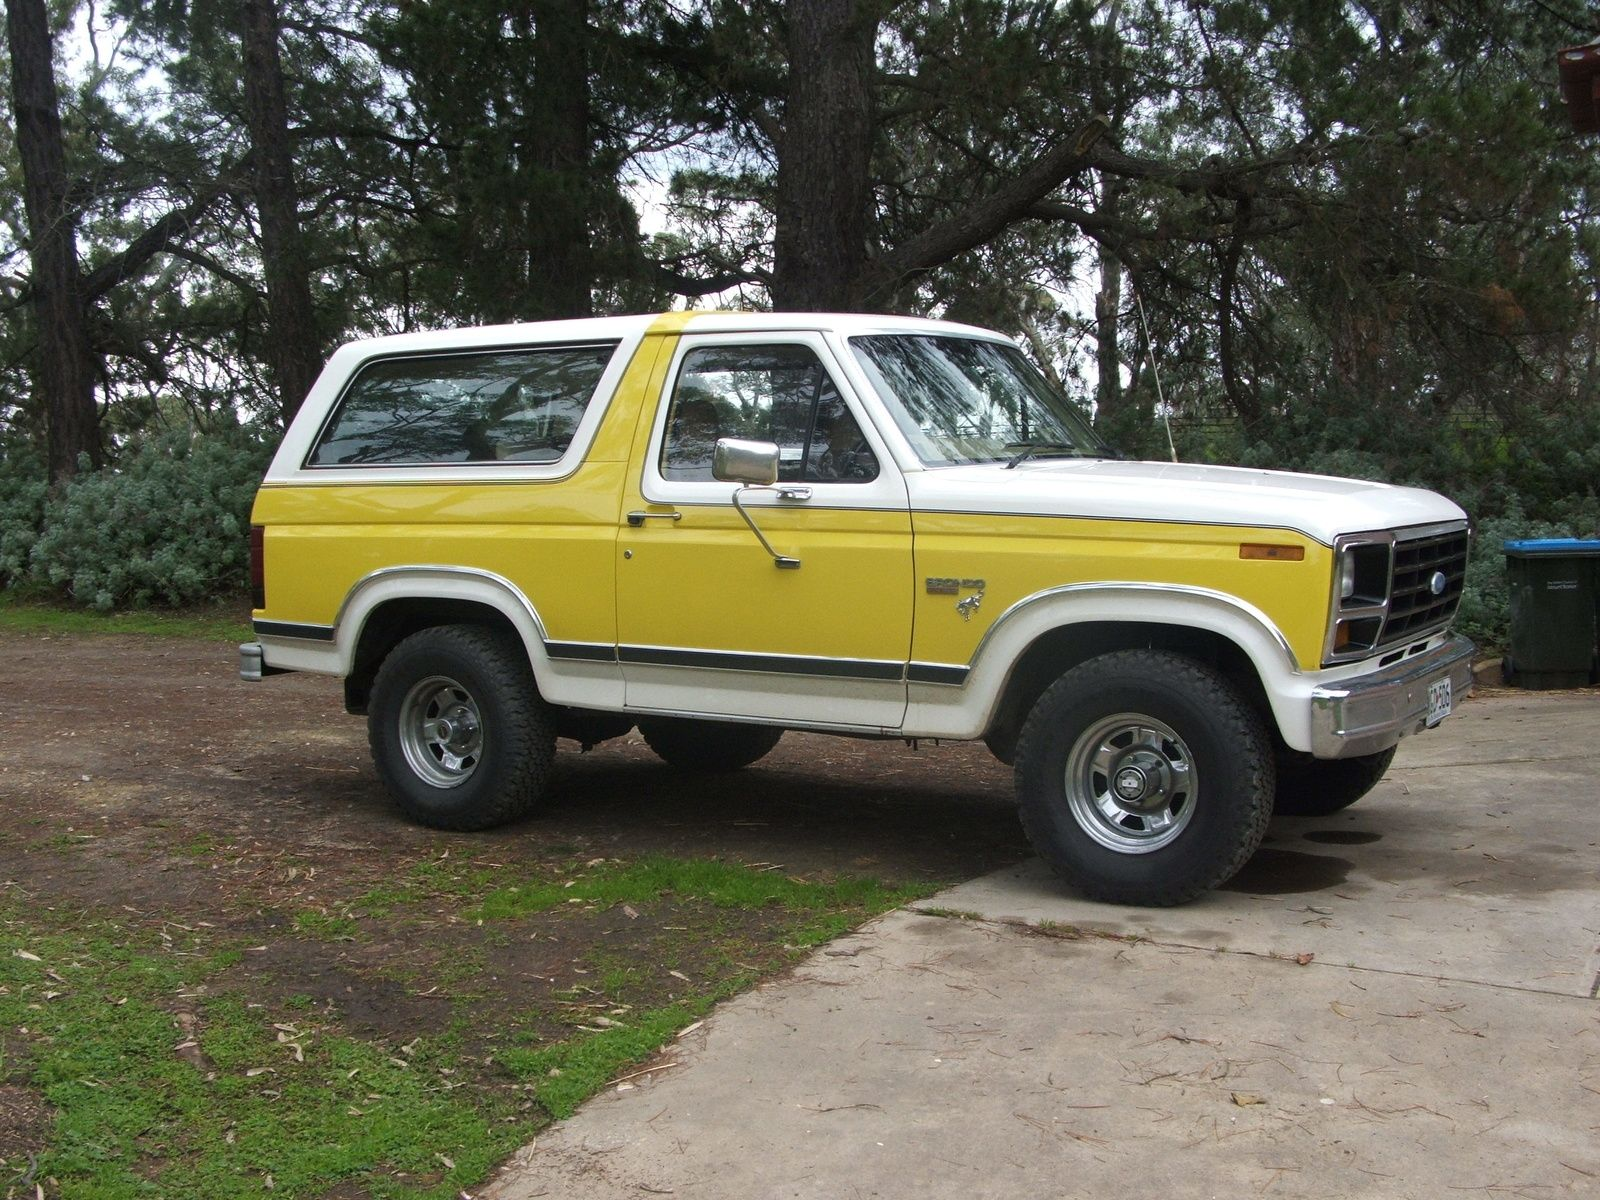 1982 yellow color ford bronco suv classic ford. Black Bedroom Furniture Sets. Home Design Ideas